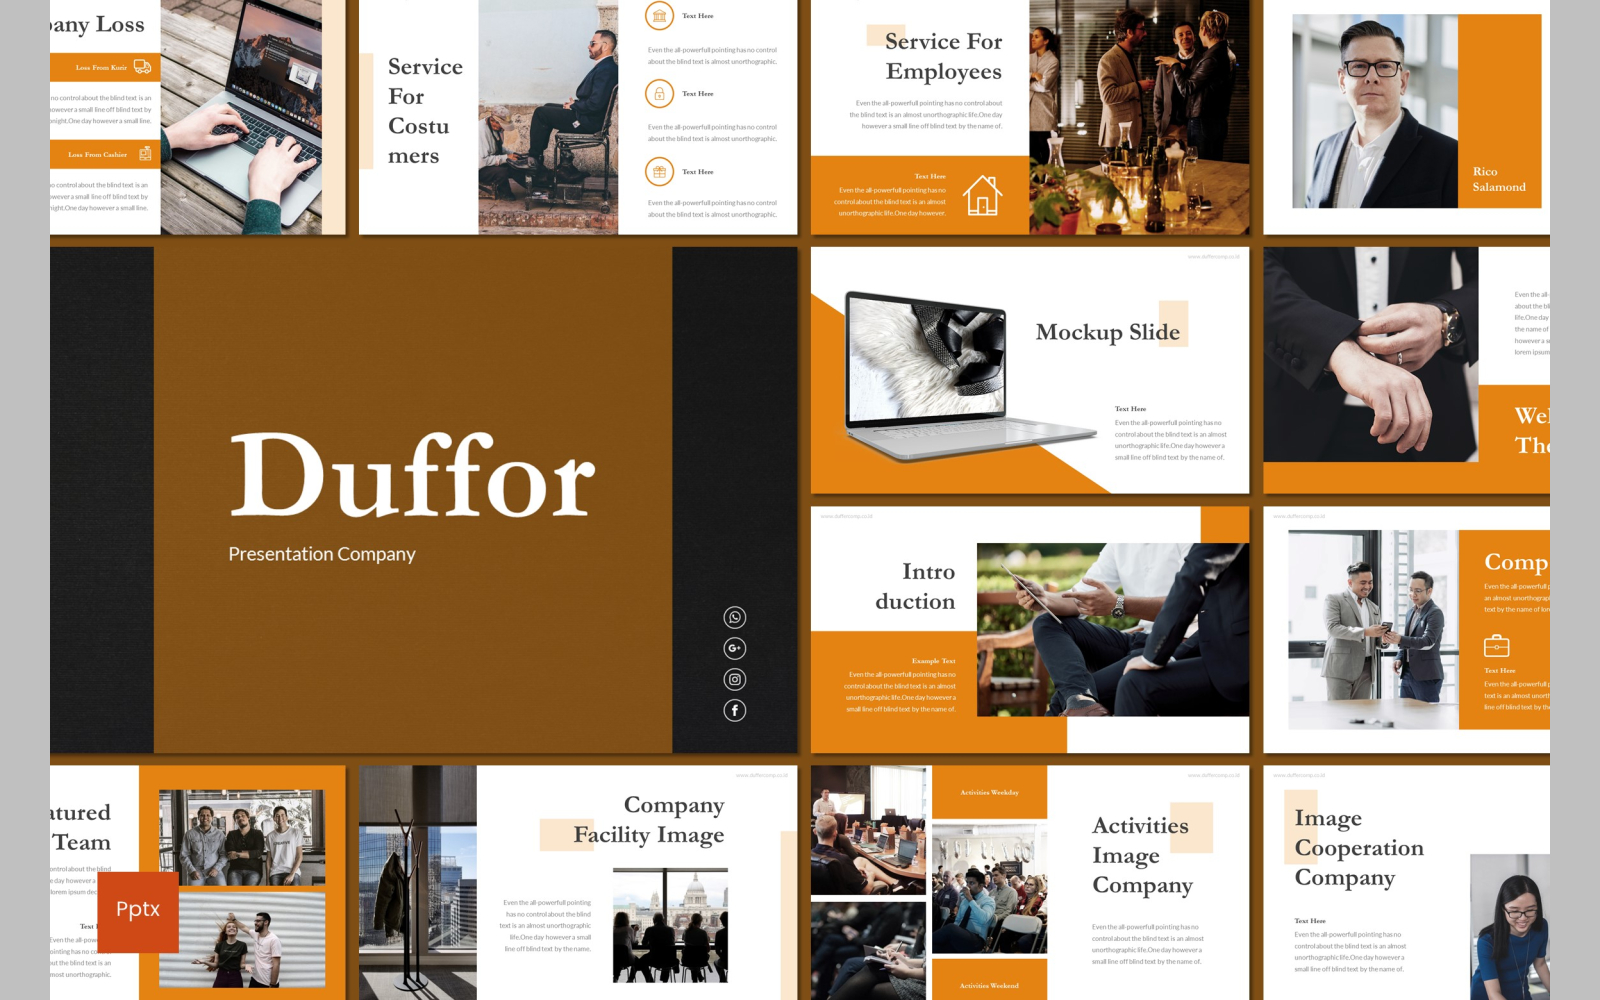 Duffor PowerPoint Template